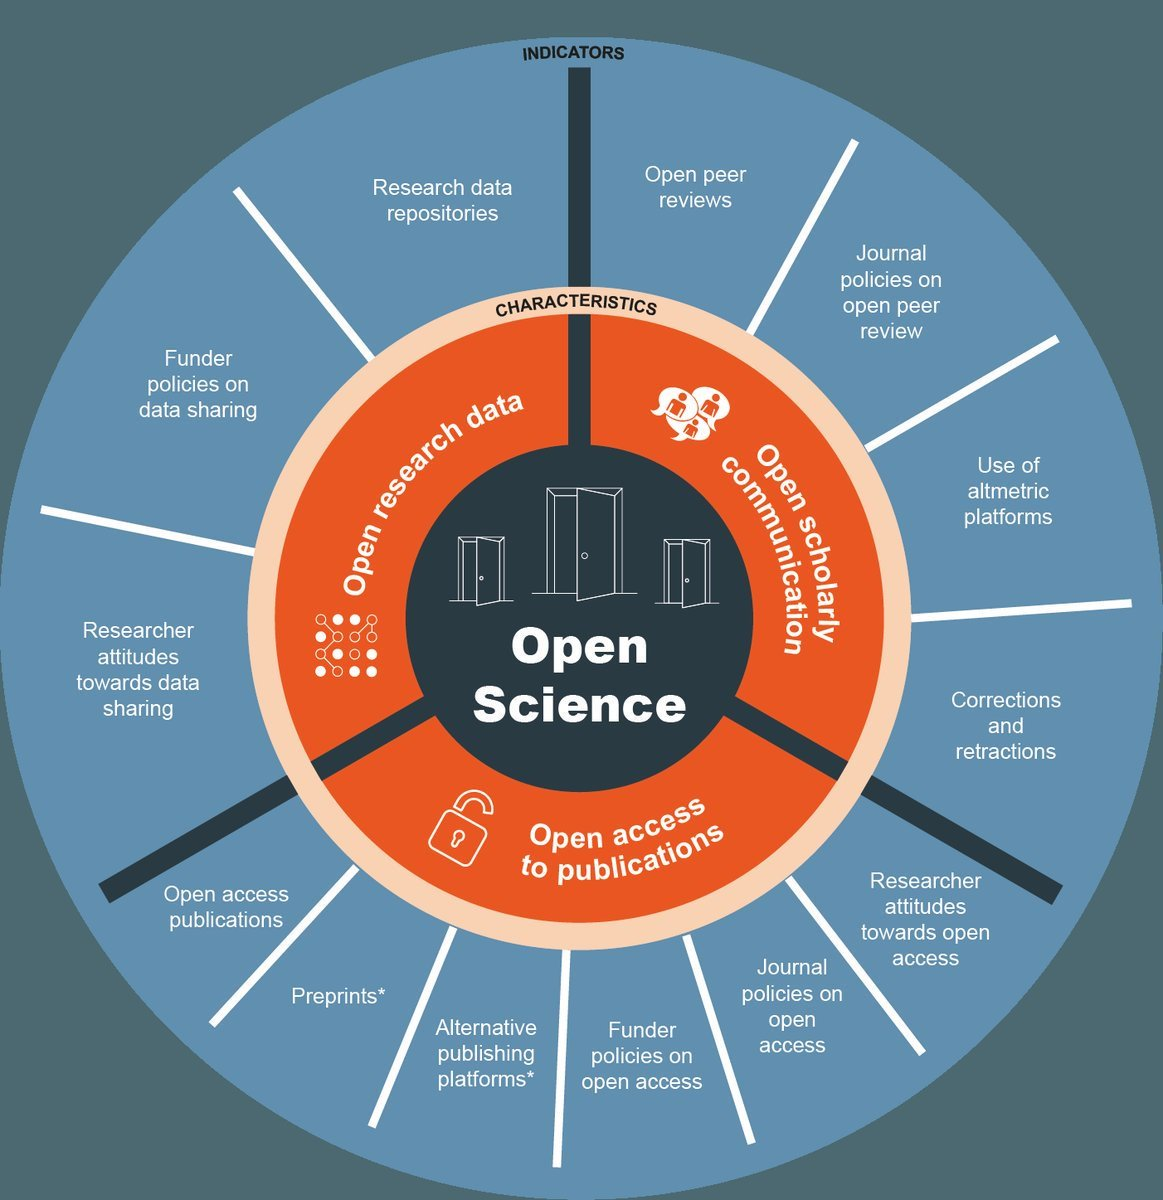 What is #OpenScience ?  #DataScience #BigData #Intelligence #AI #IoT #primetech #Mpgvip #MakeYourOwnLane #MachineLearning #DataScience #IIoT<br>http://pic.twitter.com/C2Ts7aIcvH